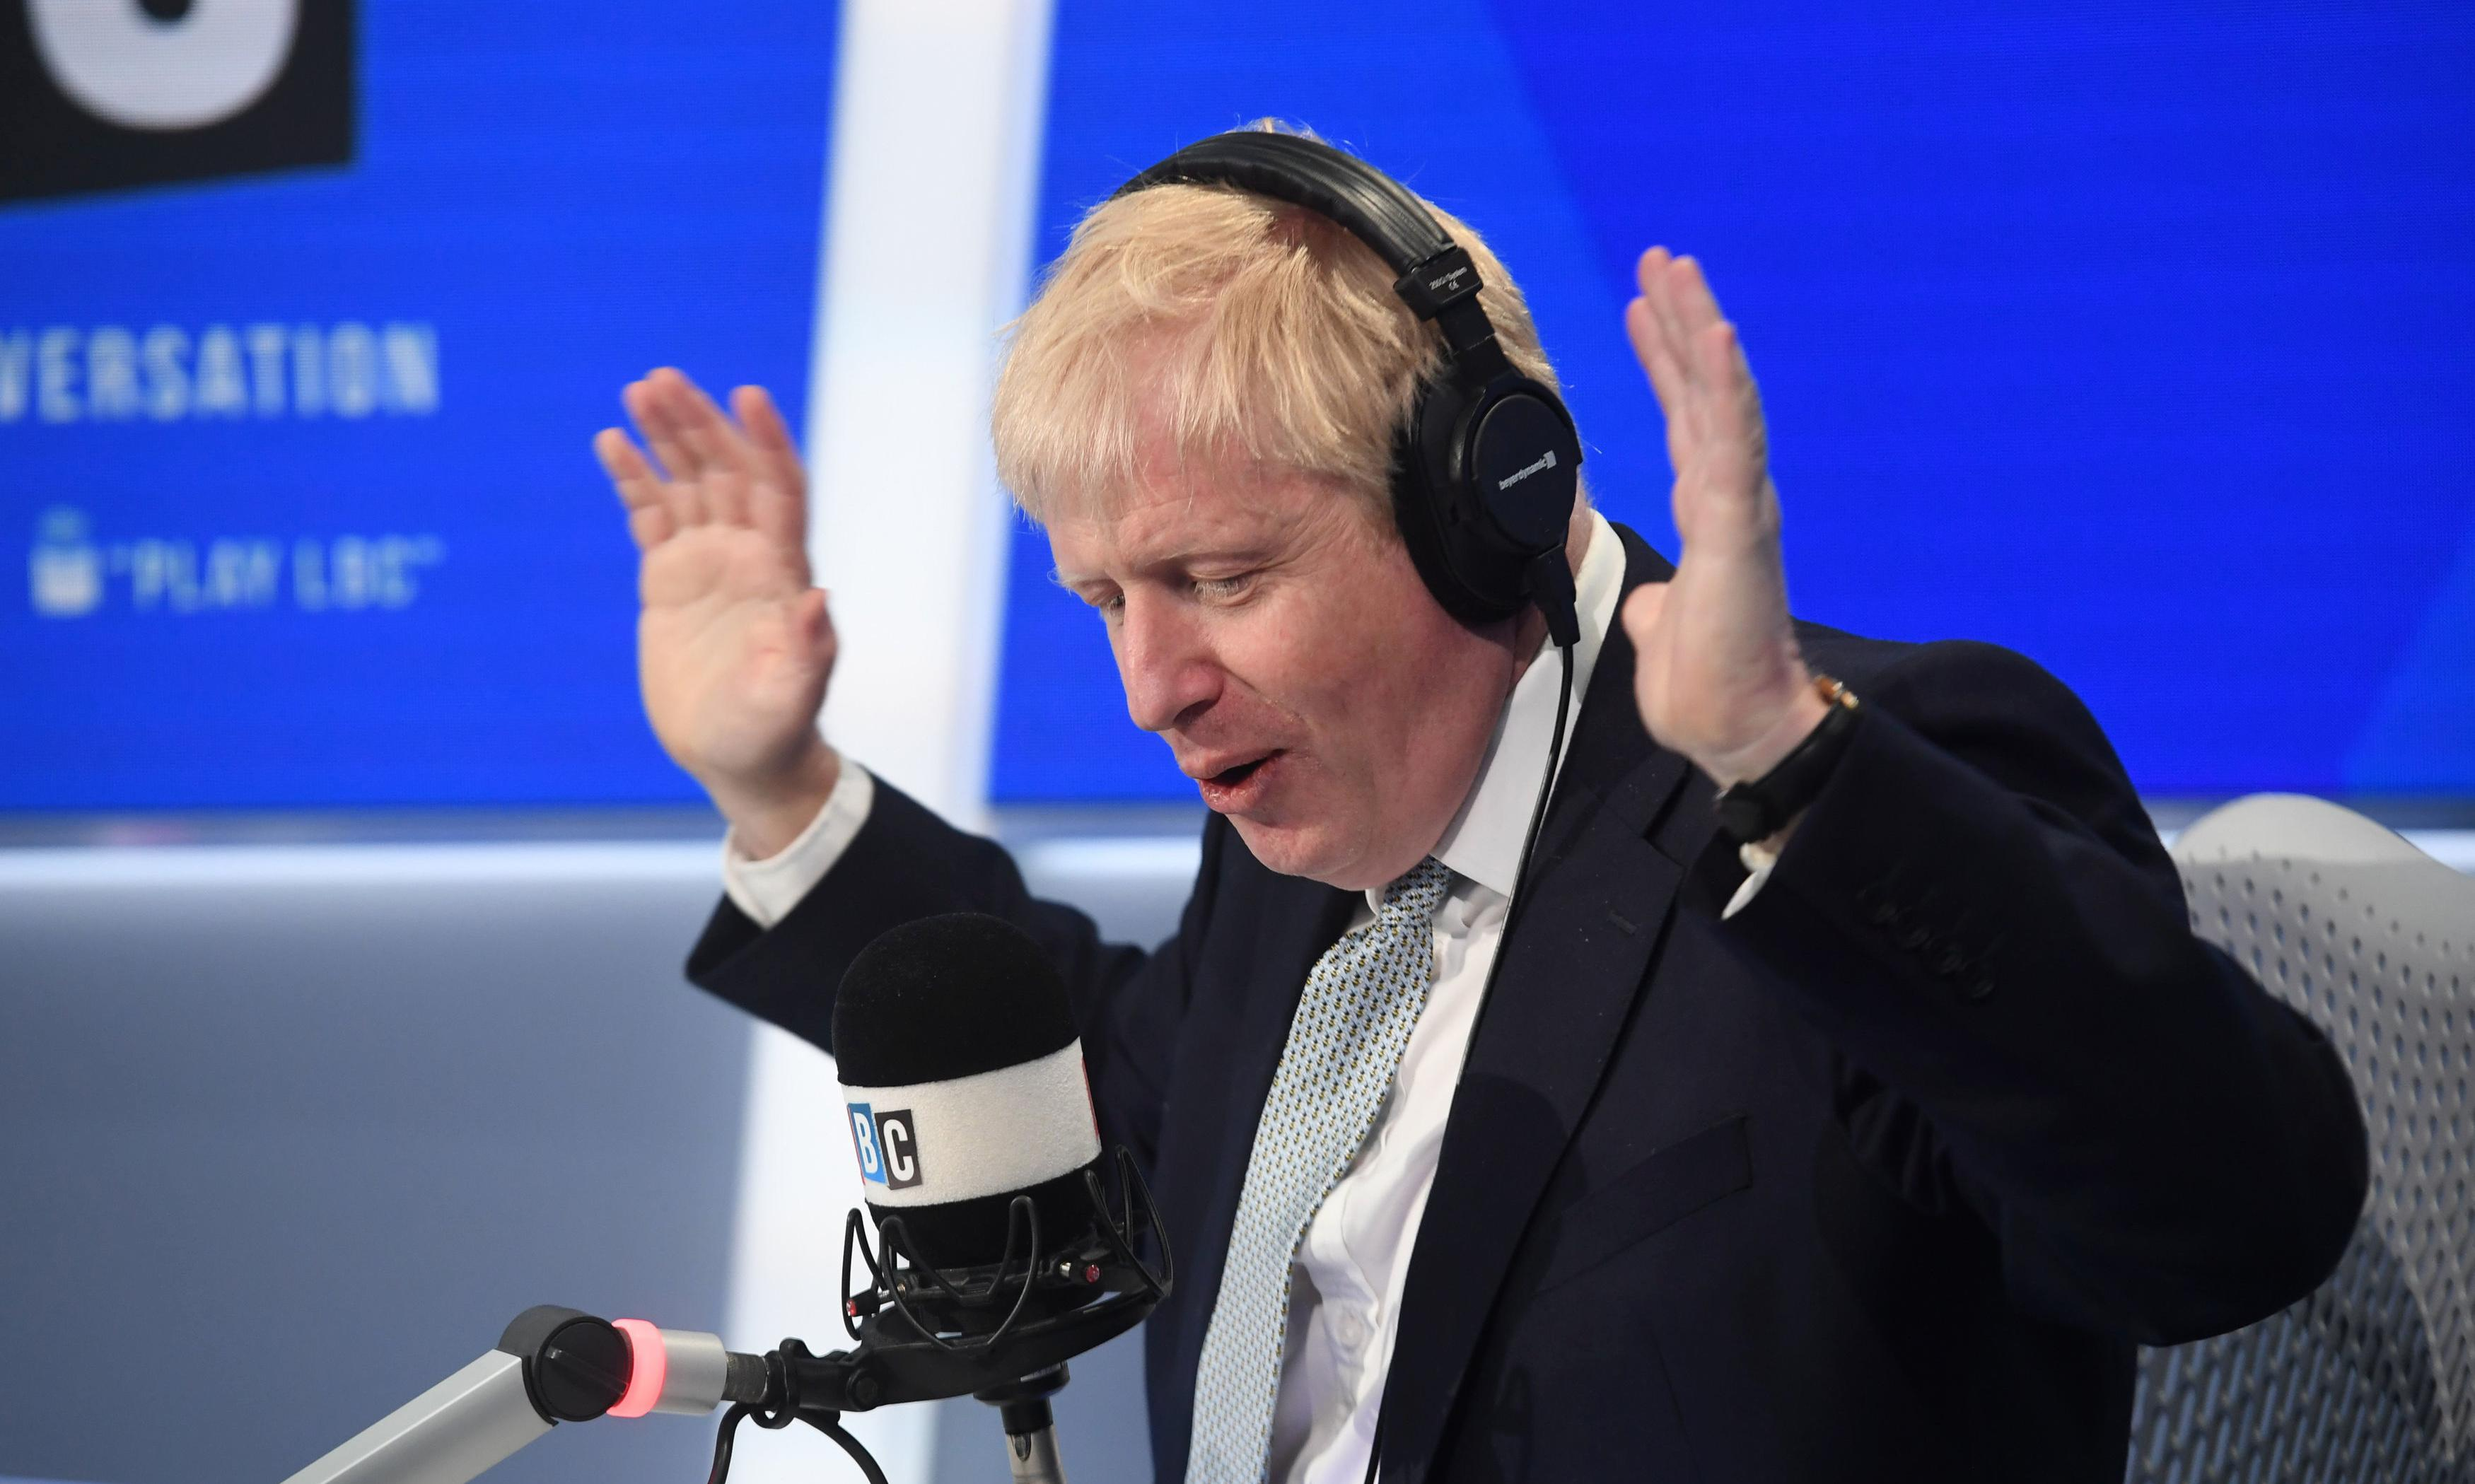 Boris Johnson takes to airwaves to lie, lie and lie again